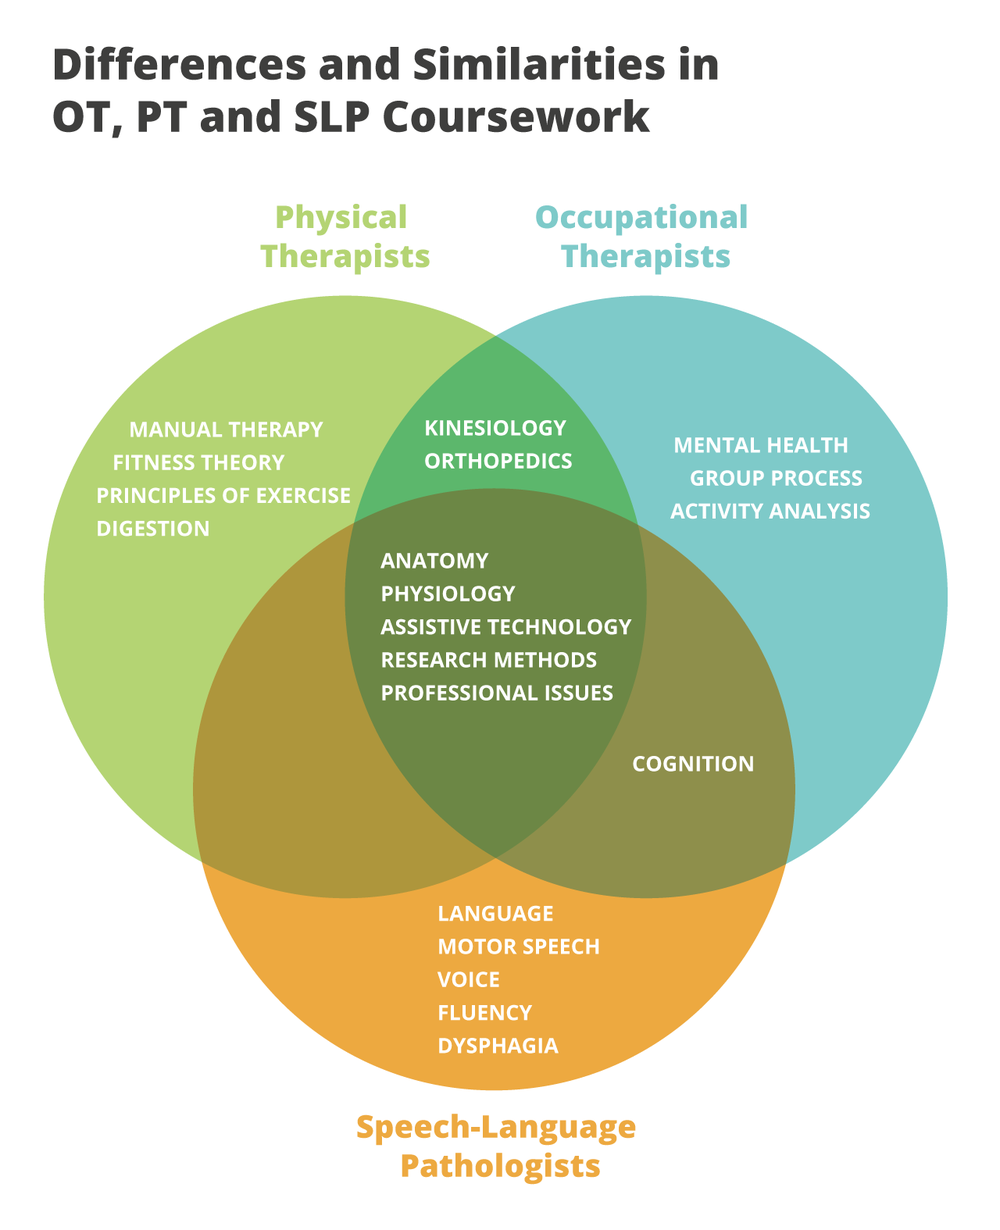 This infographic highlights the similarities and differences in the coursework between and OT, PT and SLP degree.